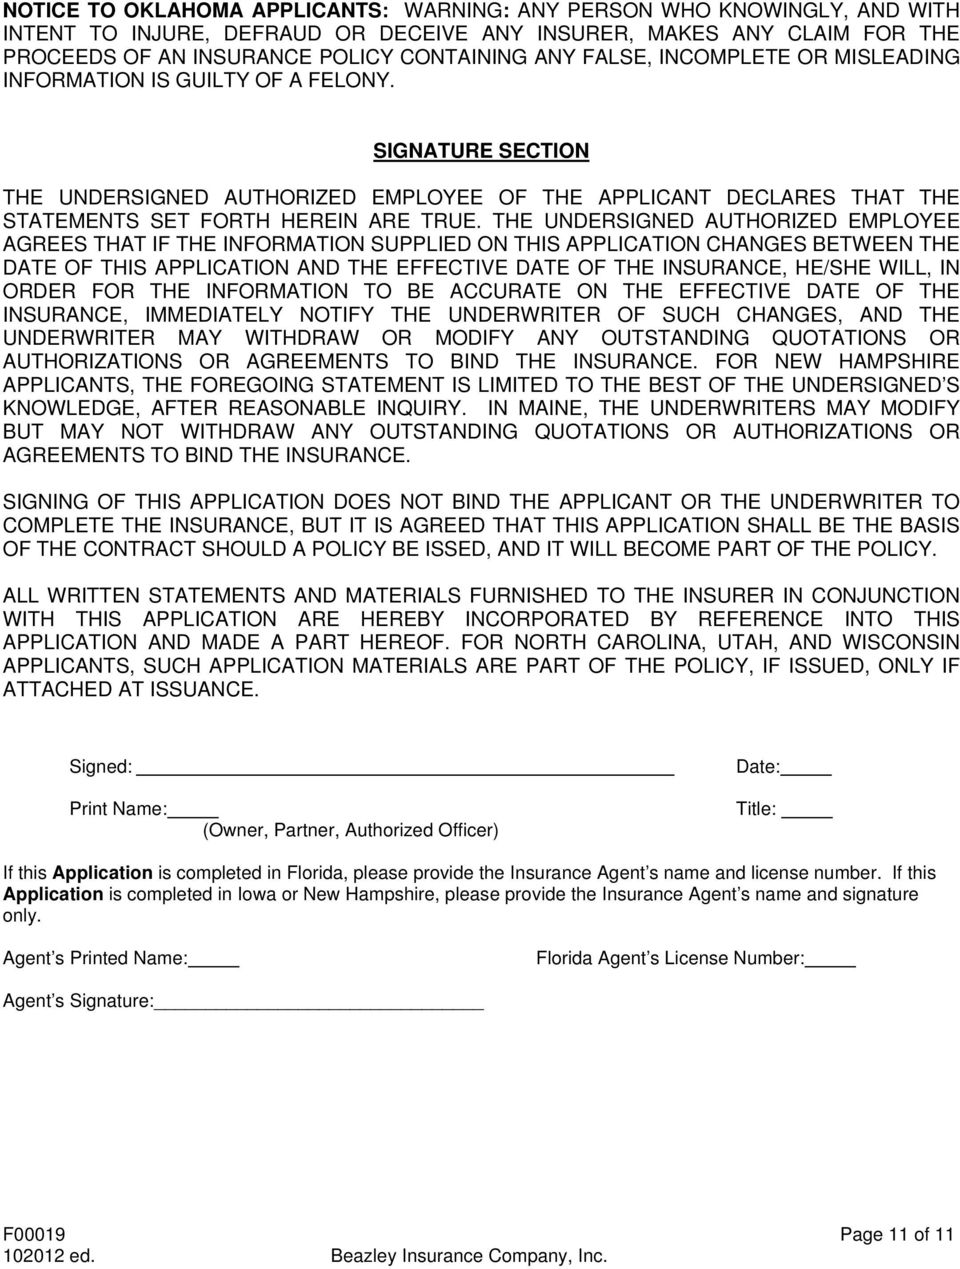 THE UNDERSIGNED AUTHORIZED EMPLOYEE AGREES THAT IF THE INFORMATION SUPPLIED ON THIS APPLICATION CHANGES BETWEEN THE DATE OF THIS APPLICATION AND THE EFFECTIVE DATE OF THE INSURANCE, HE/SHE WILL, IN